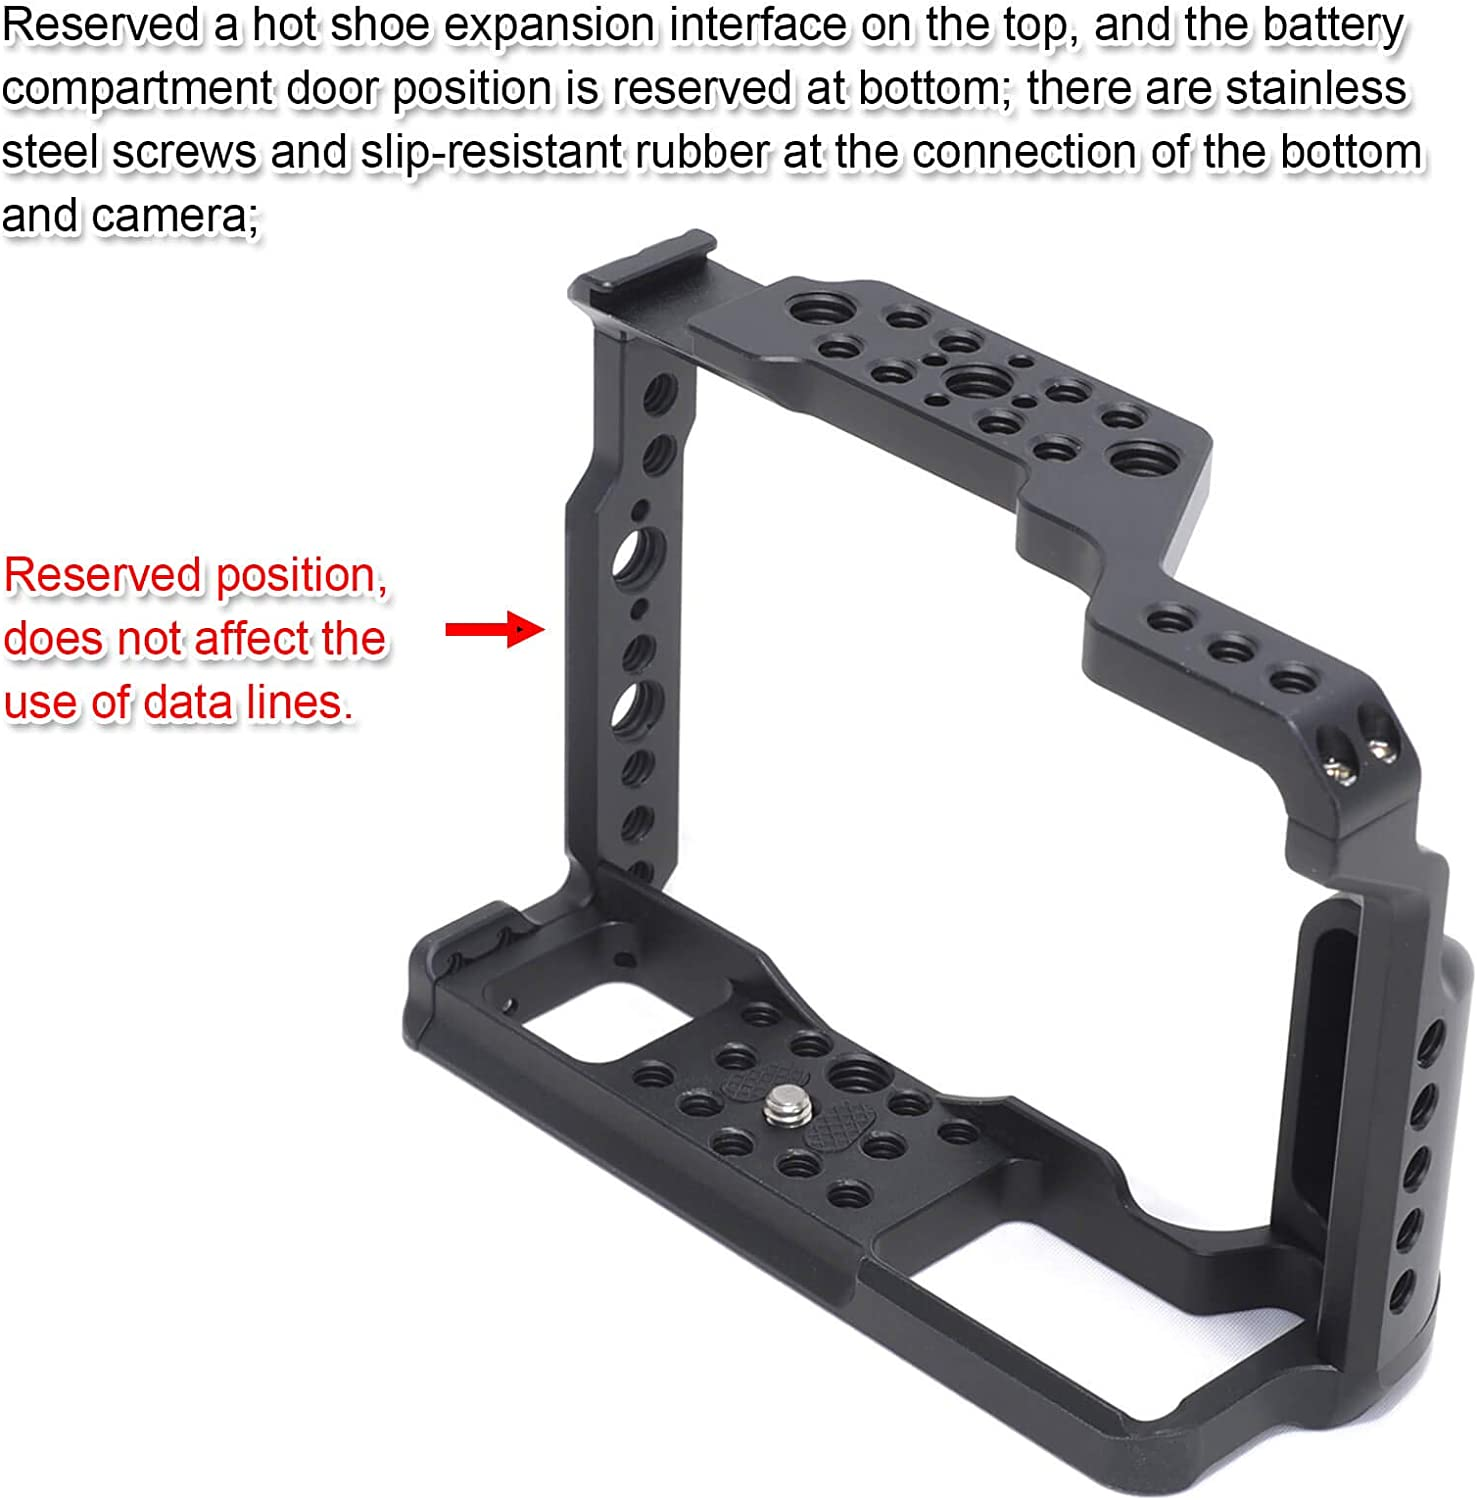 iShoot Camera Cage Stabilizer CNC Machined Aluminum Alloy Cinema Video Mount for Fujifilm X-T2 and X-T3 Mirrorless Digital Camera with Hot Shoe Mount and ARCA-Swiss Type Quick Release Plate Base